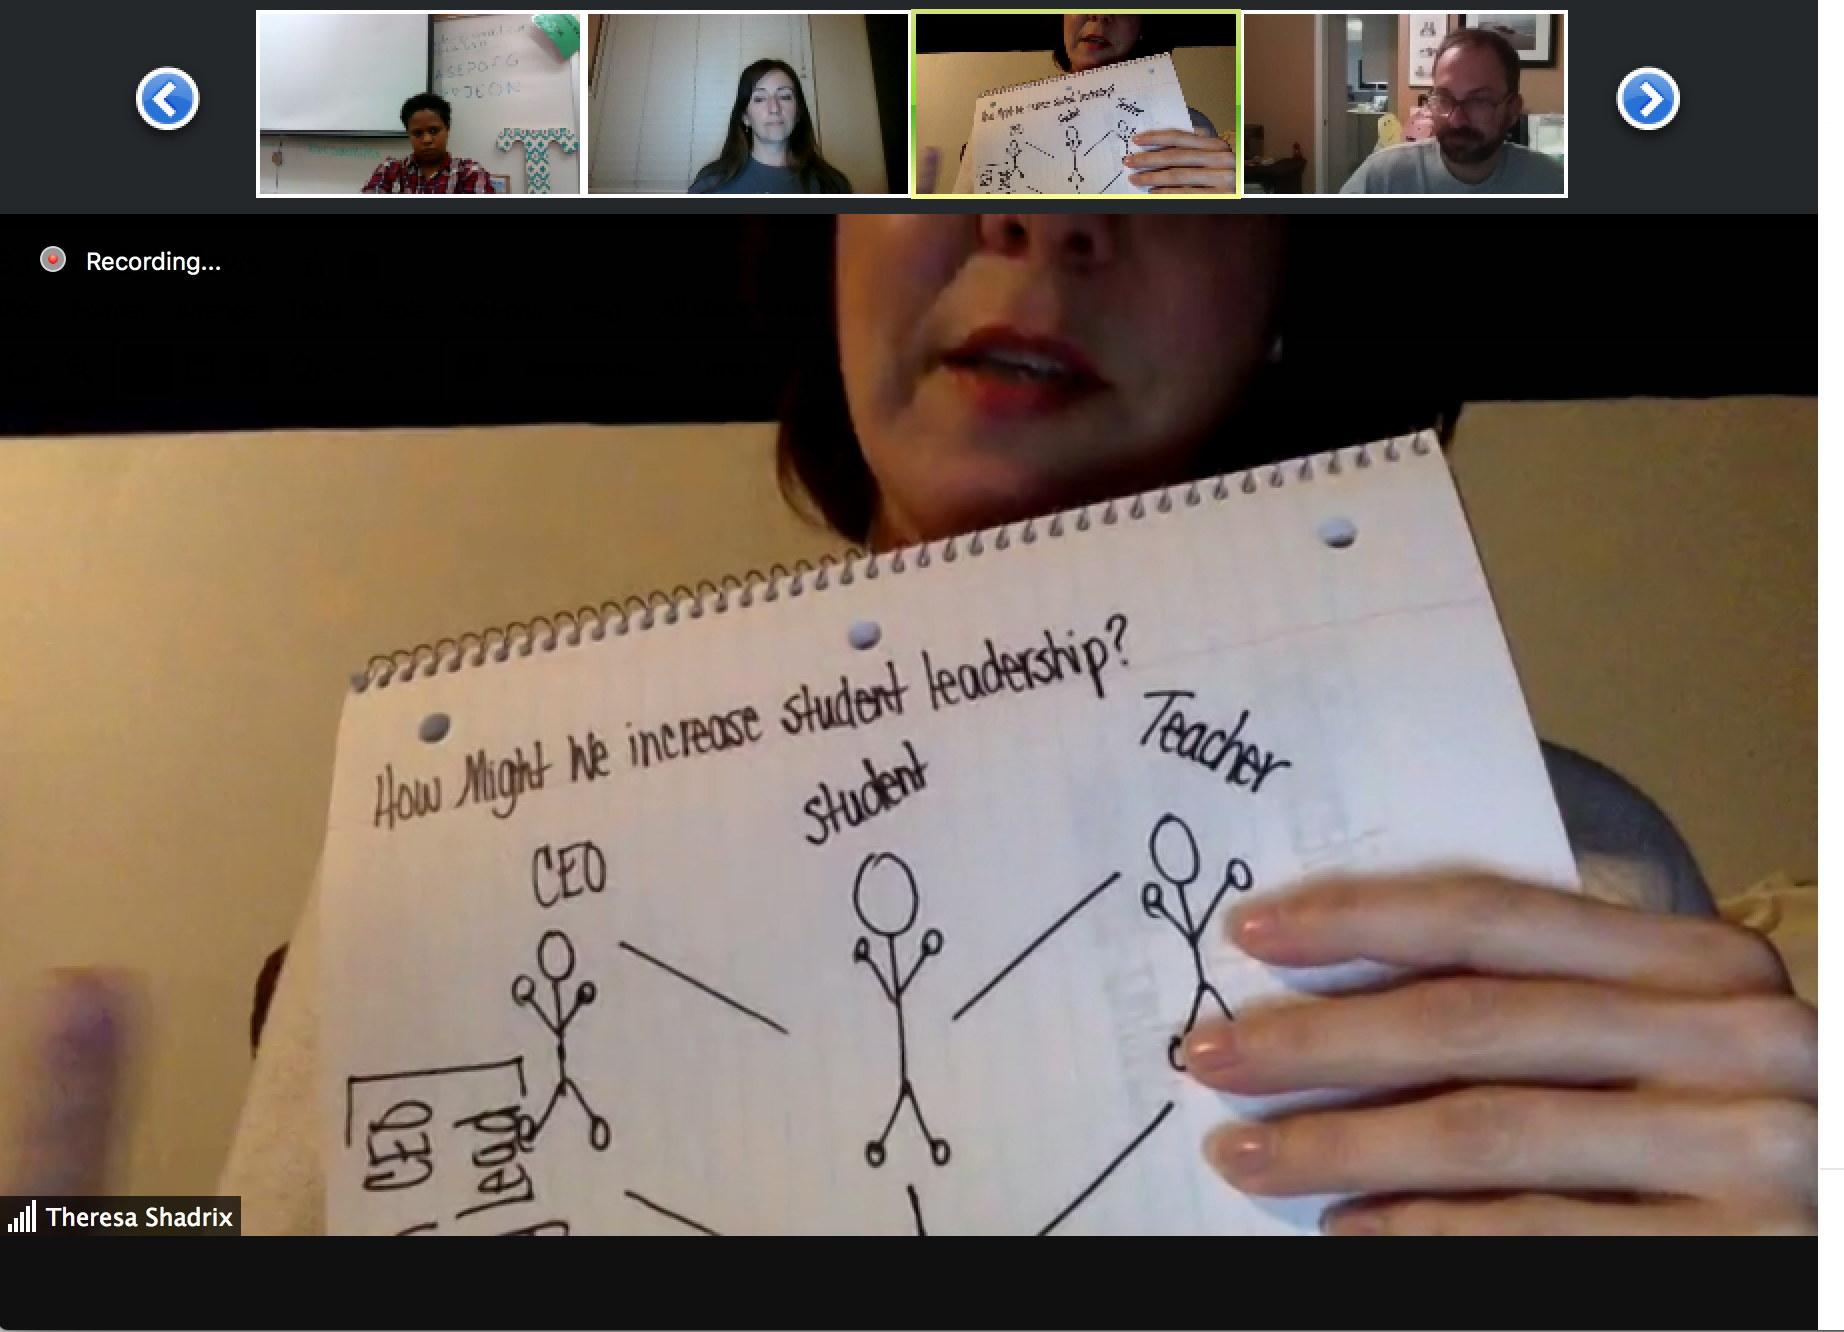 Screenshot from a Virtual Community of Practice Call. Fellows shared sketches of how they were thinking about their idea during the Build phase.